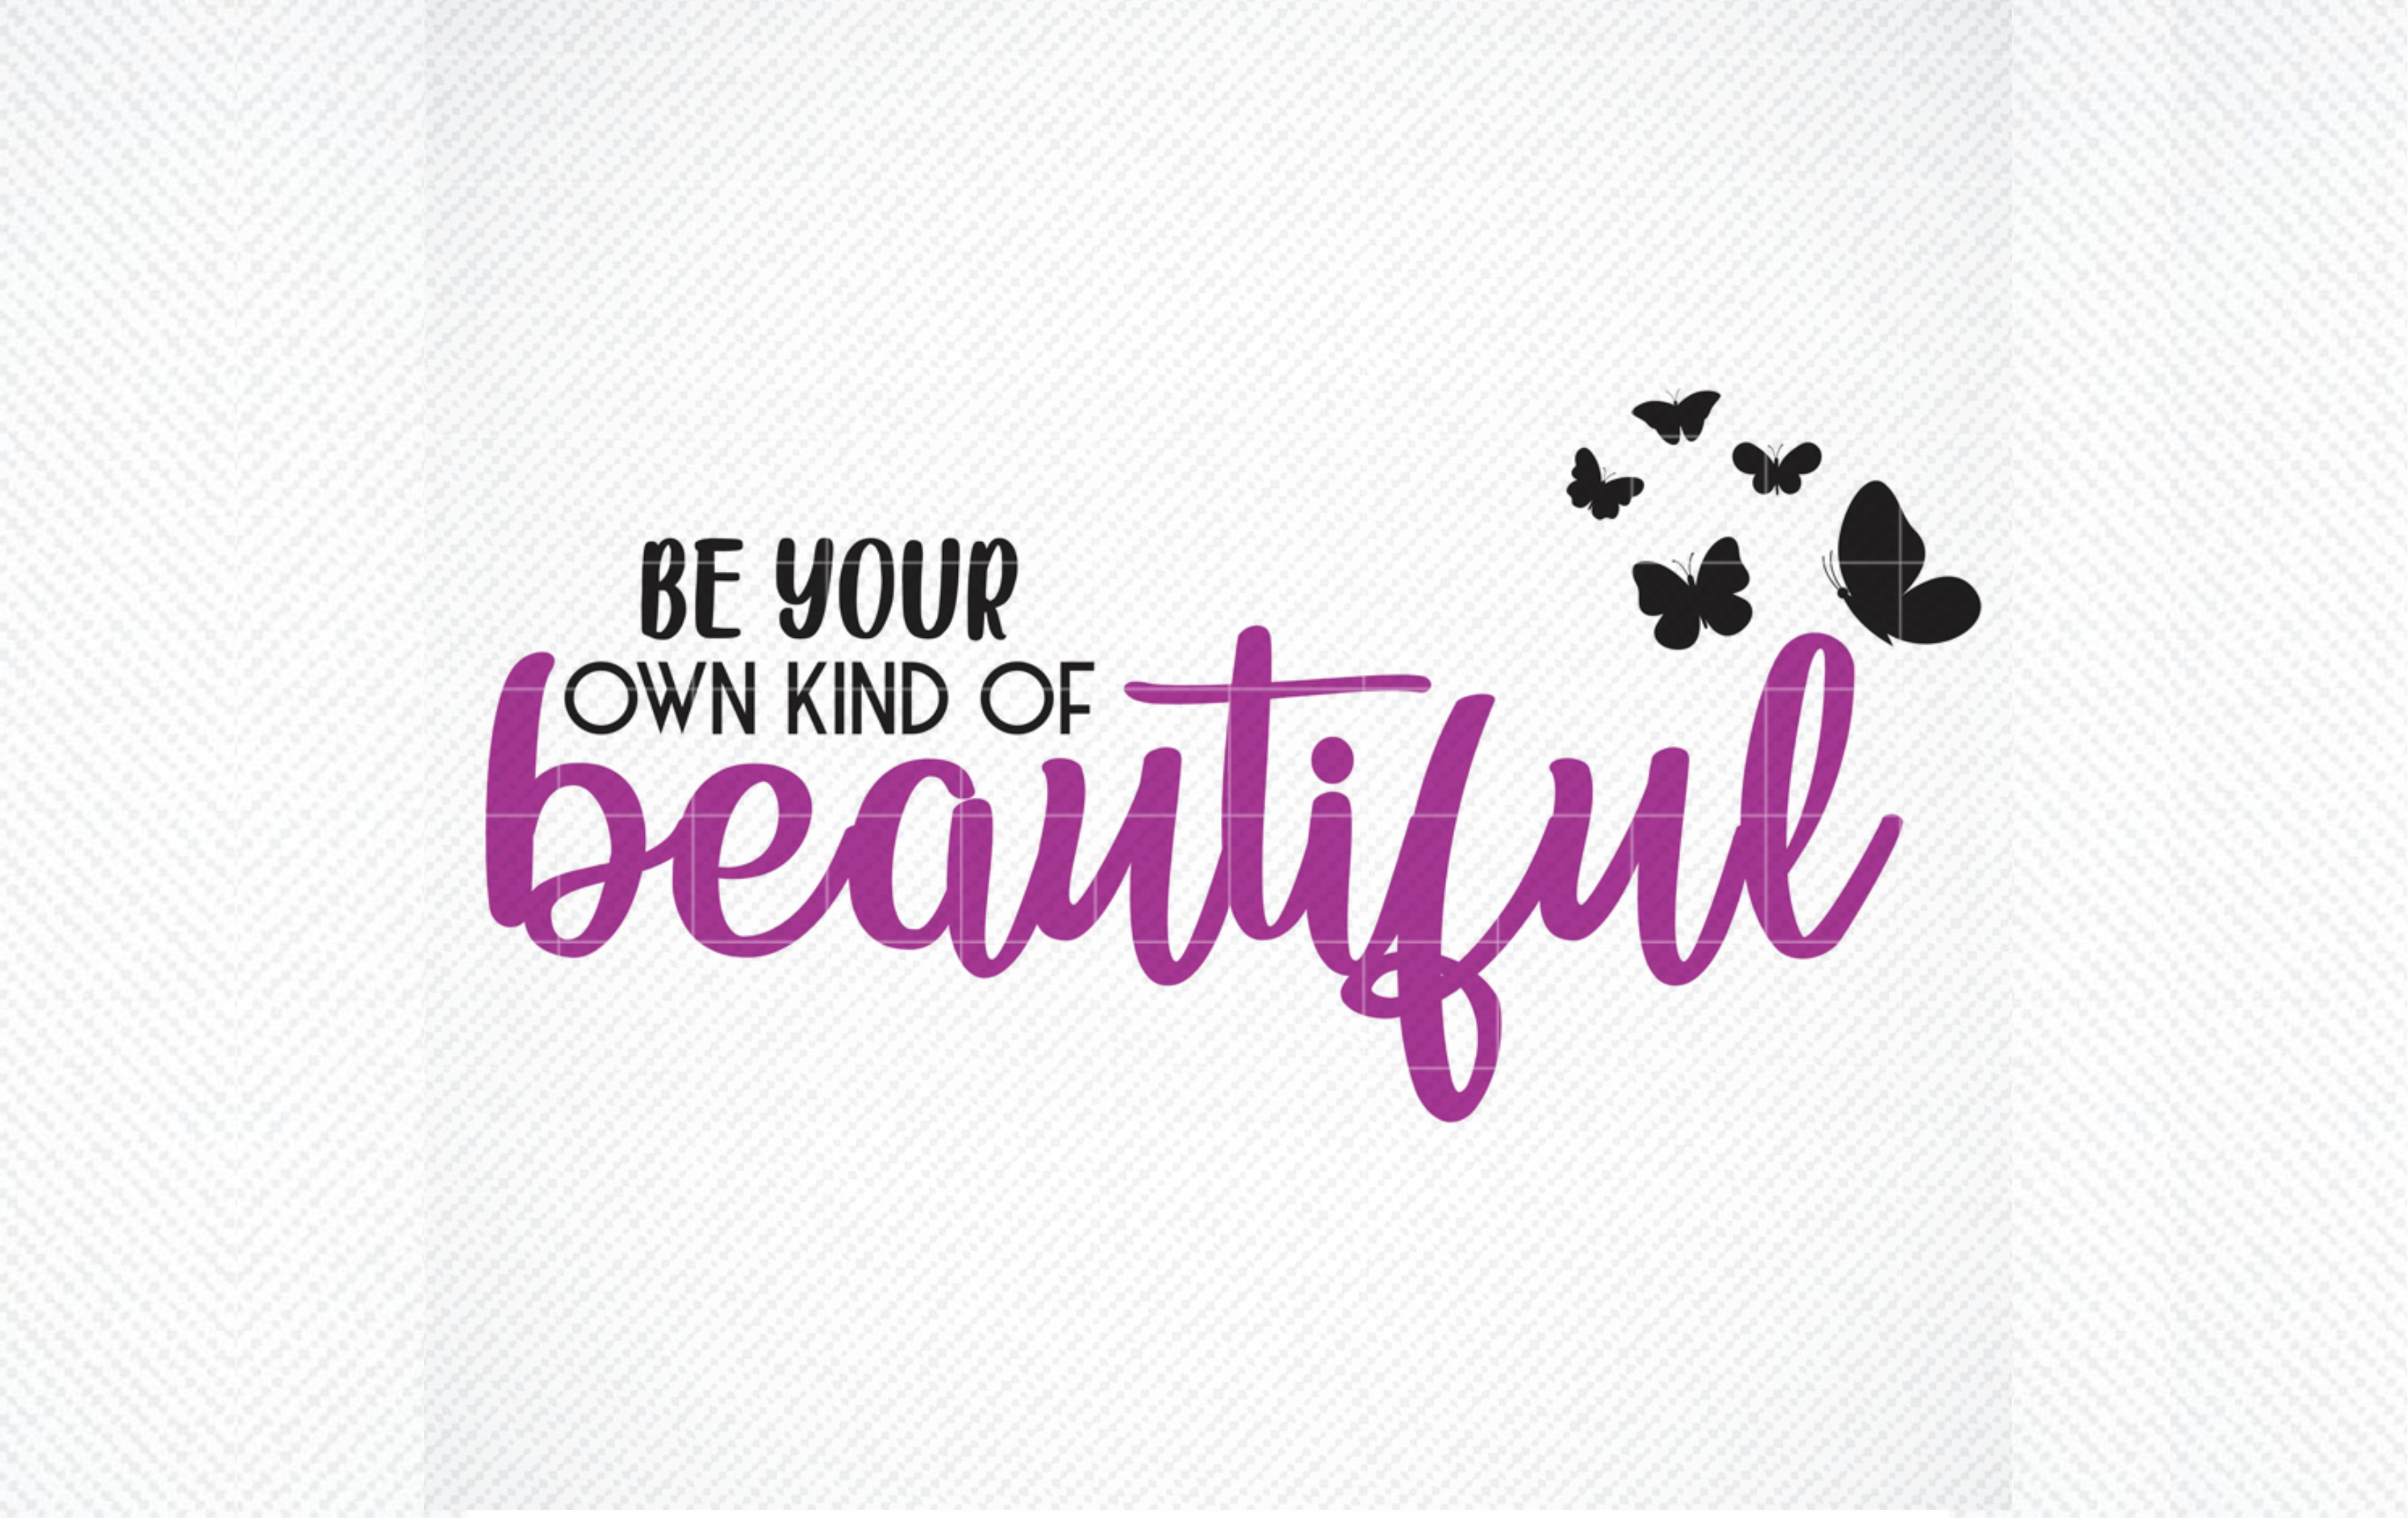 Download Free Be Your Own Kind Of Beautiful Graphic By Svg Den Creative Fabrica for Cricut Explore, Silhouette and other cutting machines.